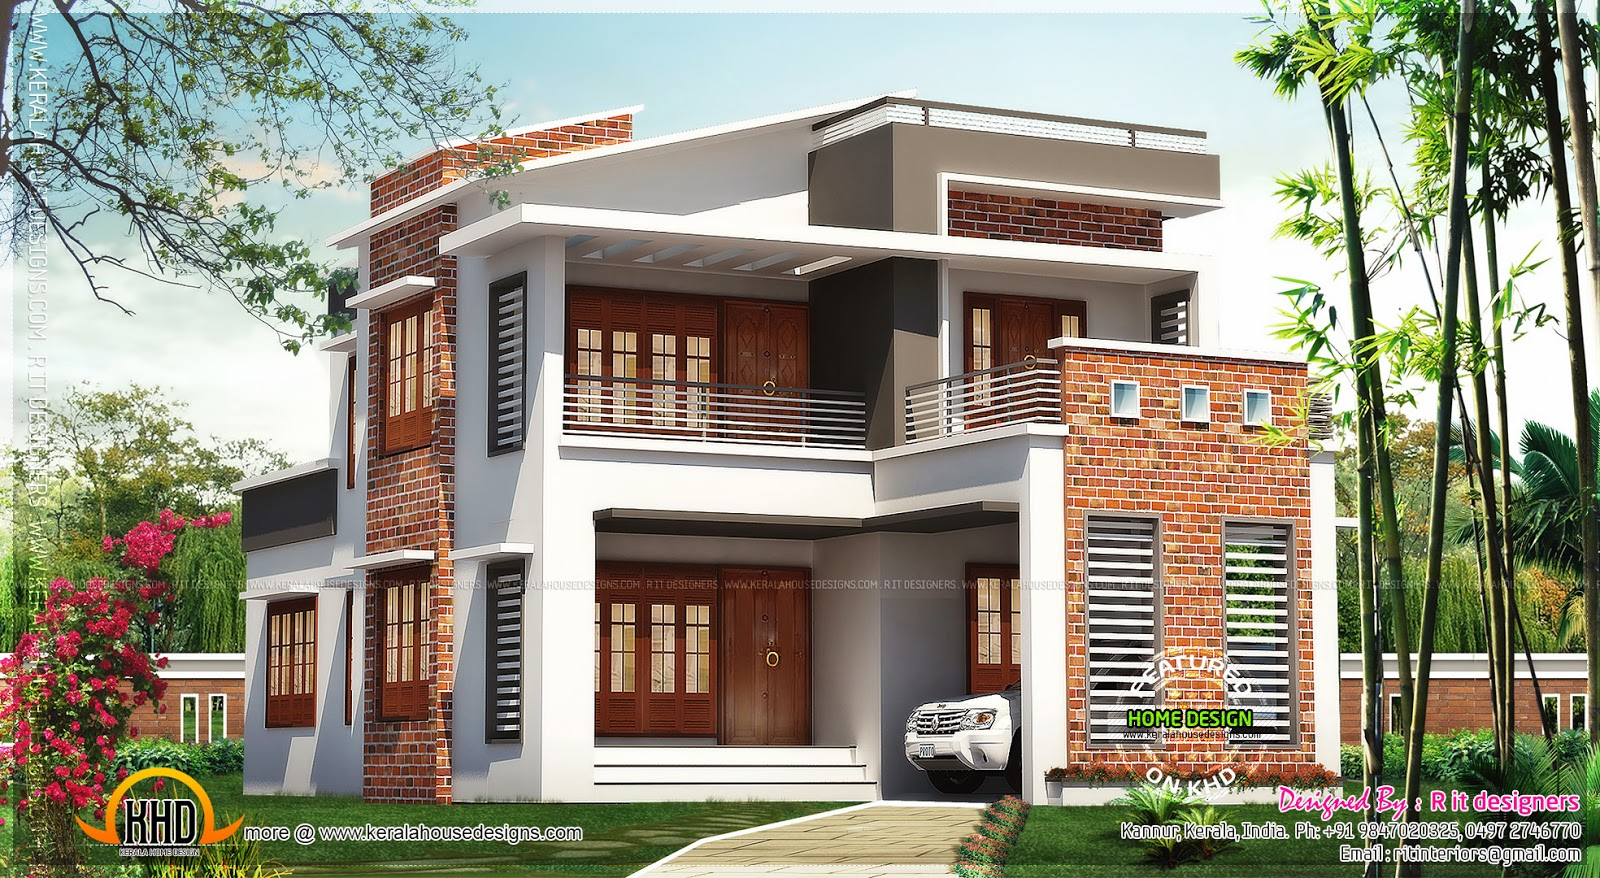 Brick mix house exterior design kerala home design and Pictures of exterior home designs in india